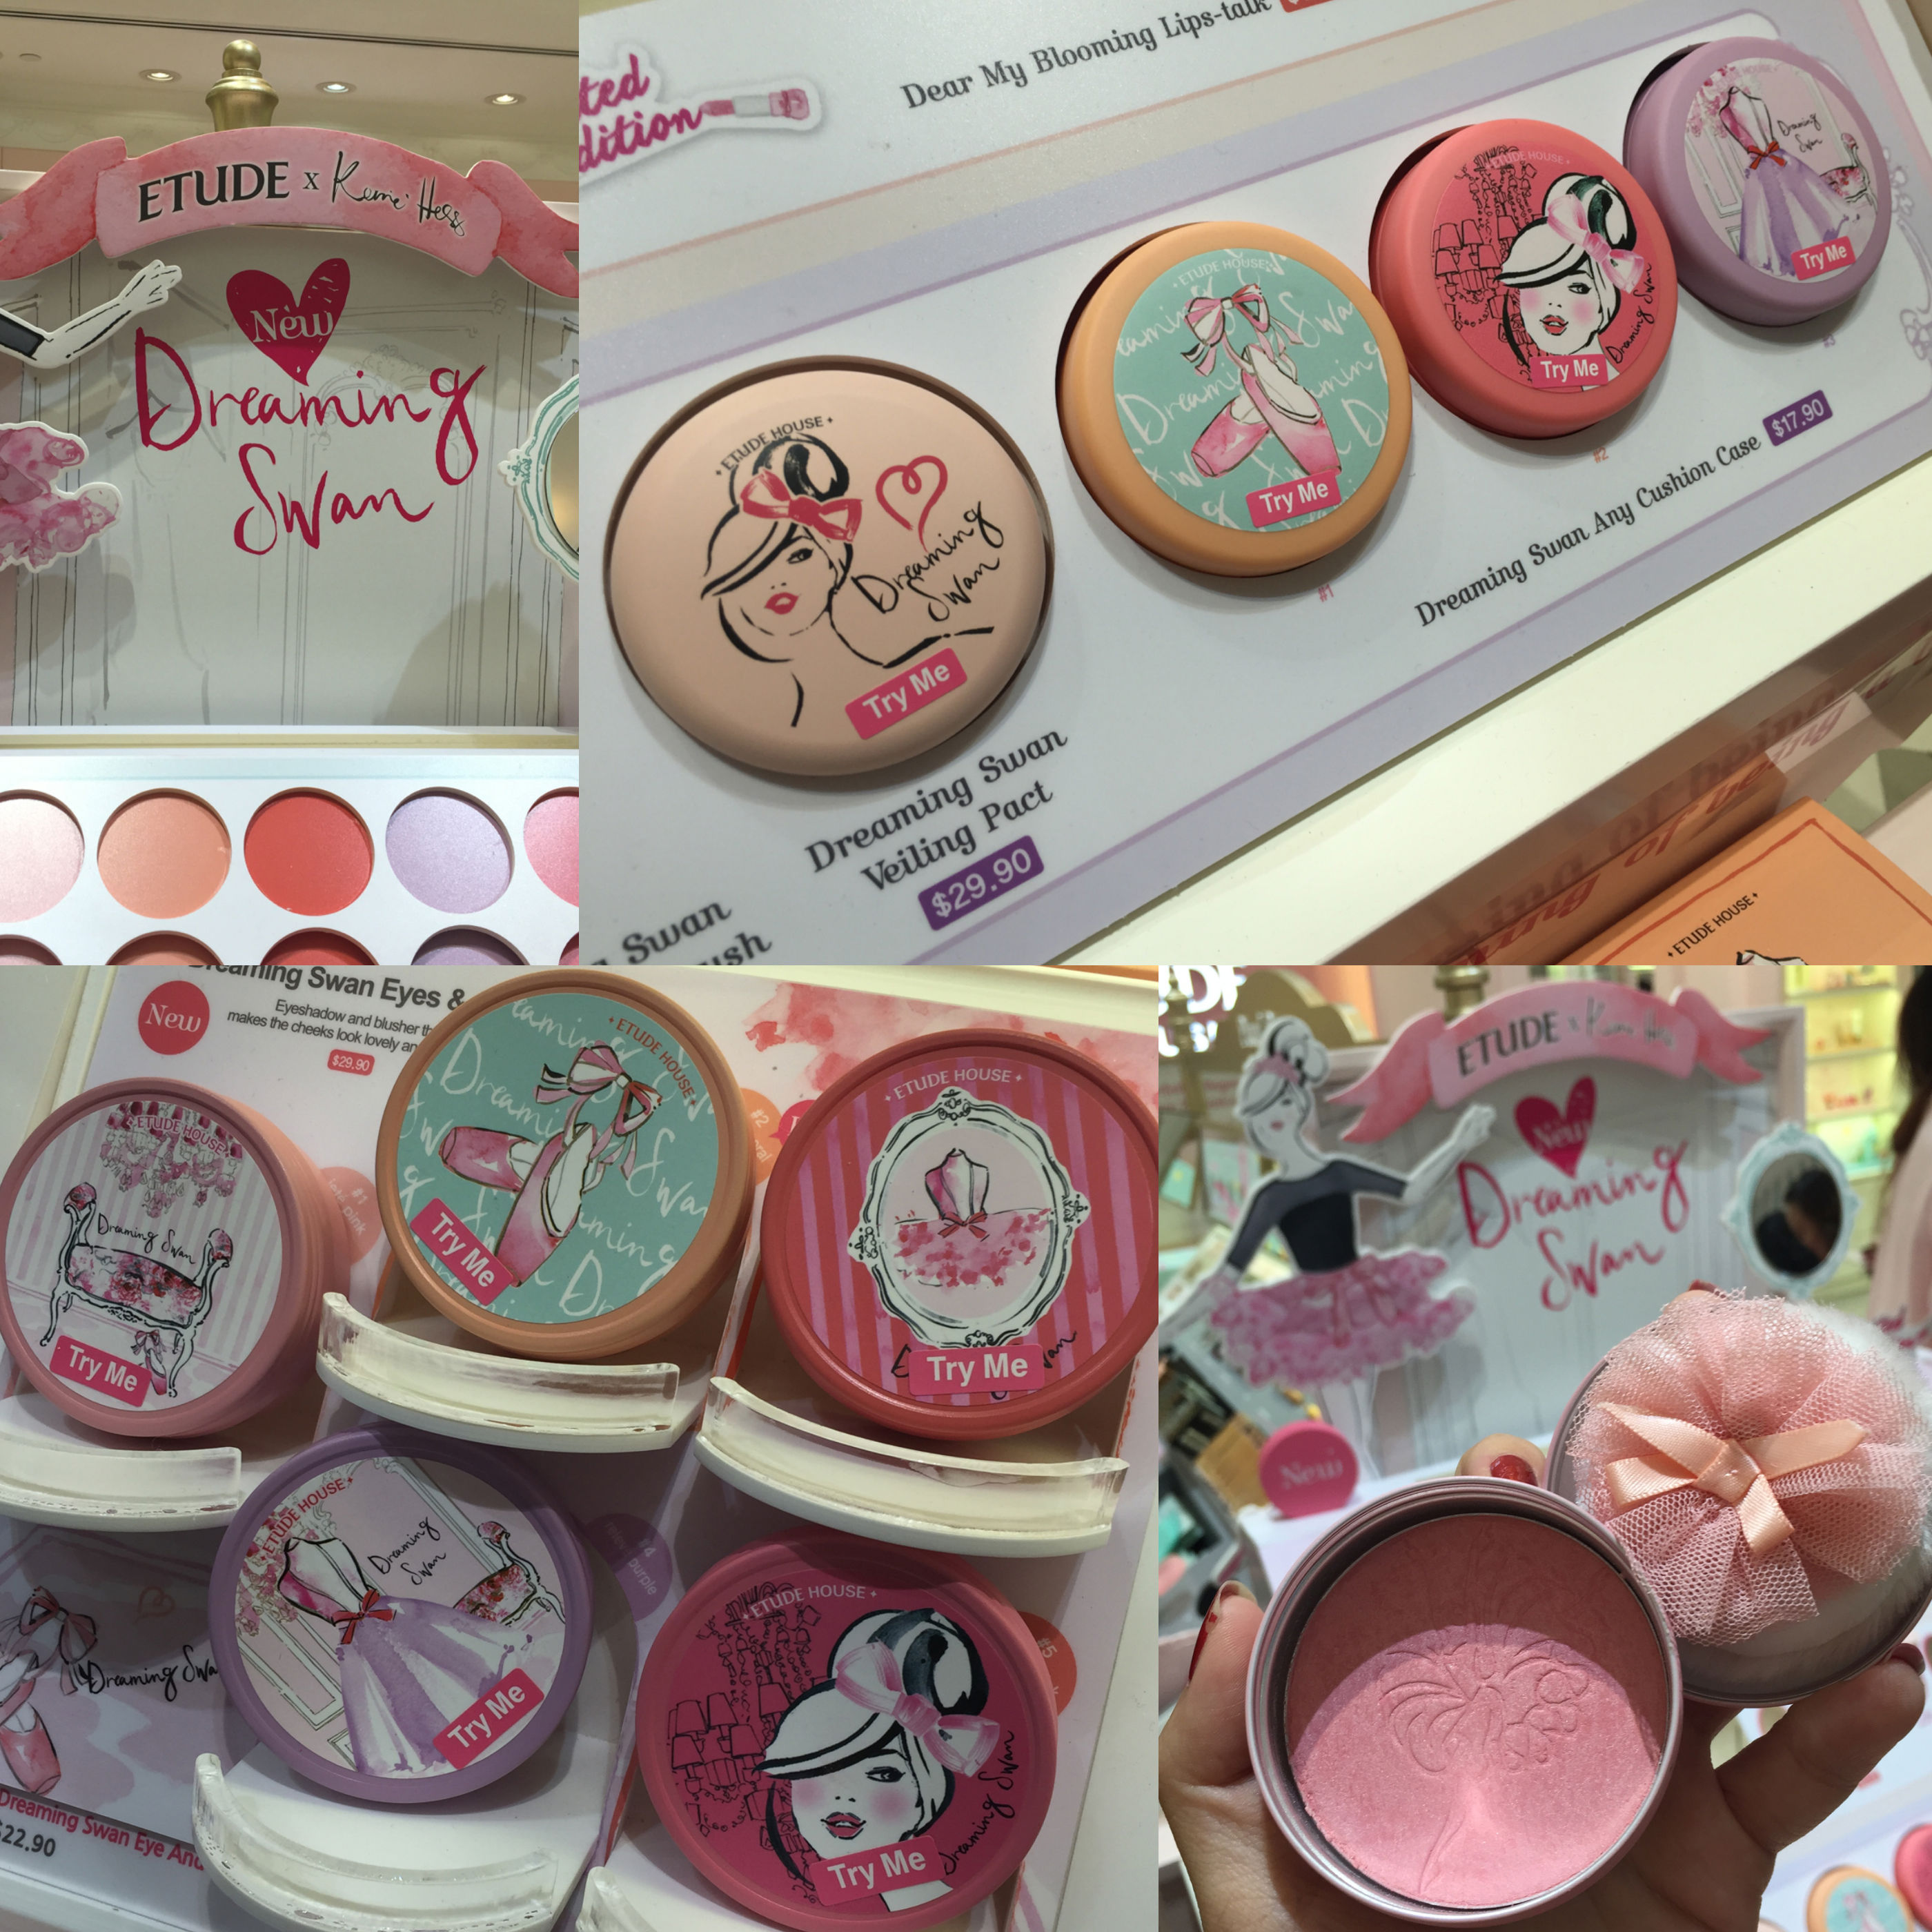 Ballerina Dreams with ETUDE HOUSE Dreaming Swan Collection ...